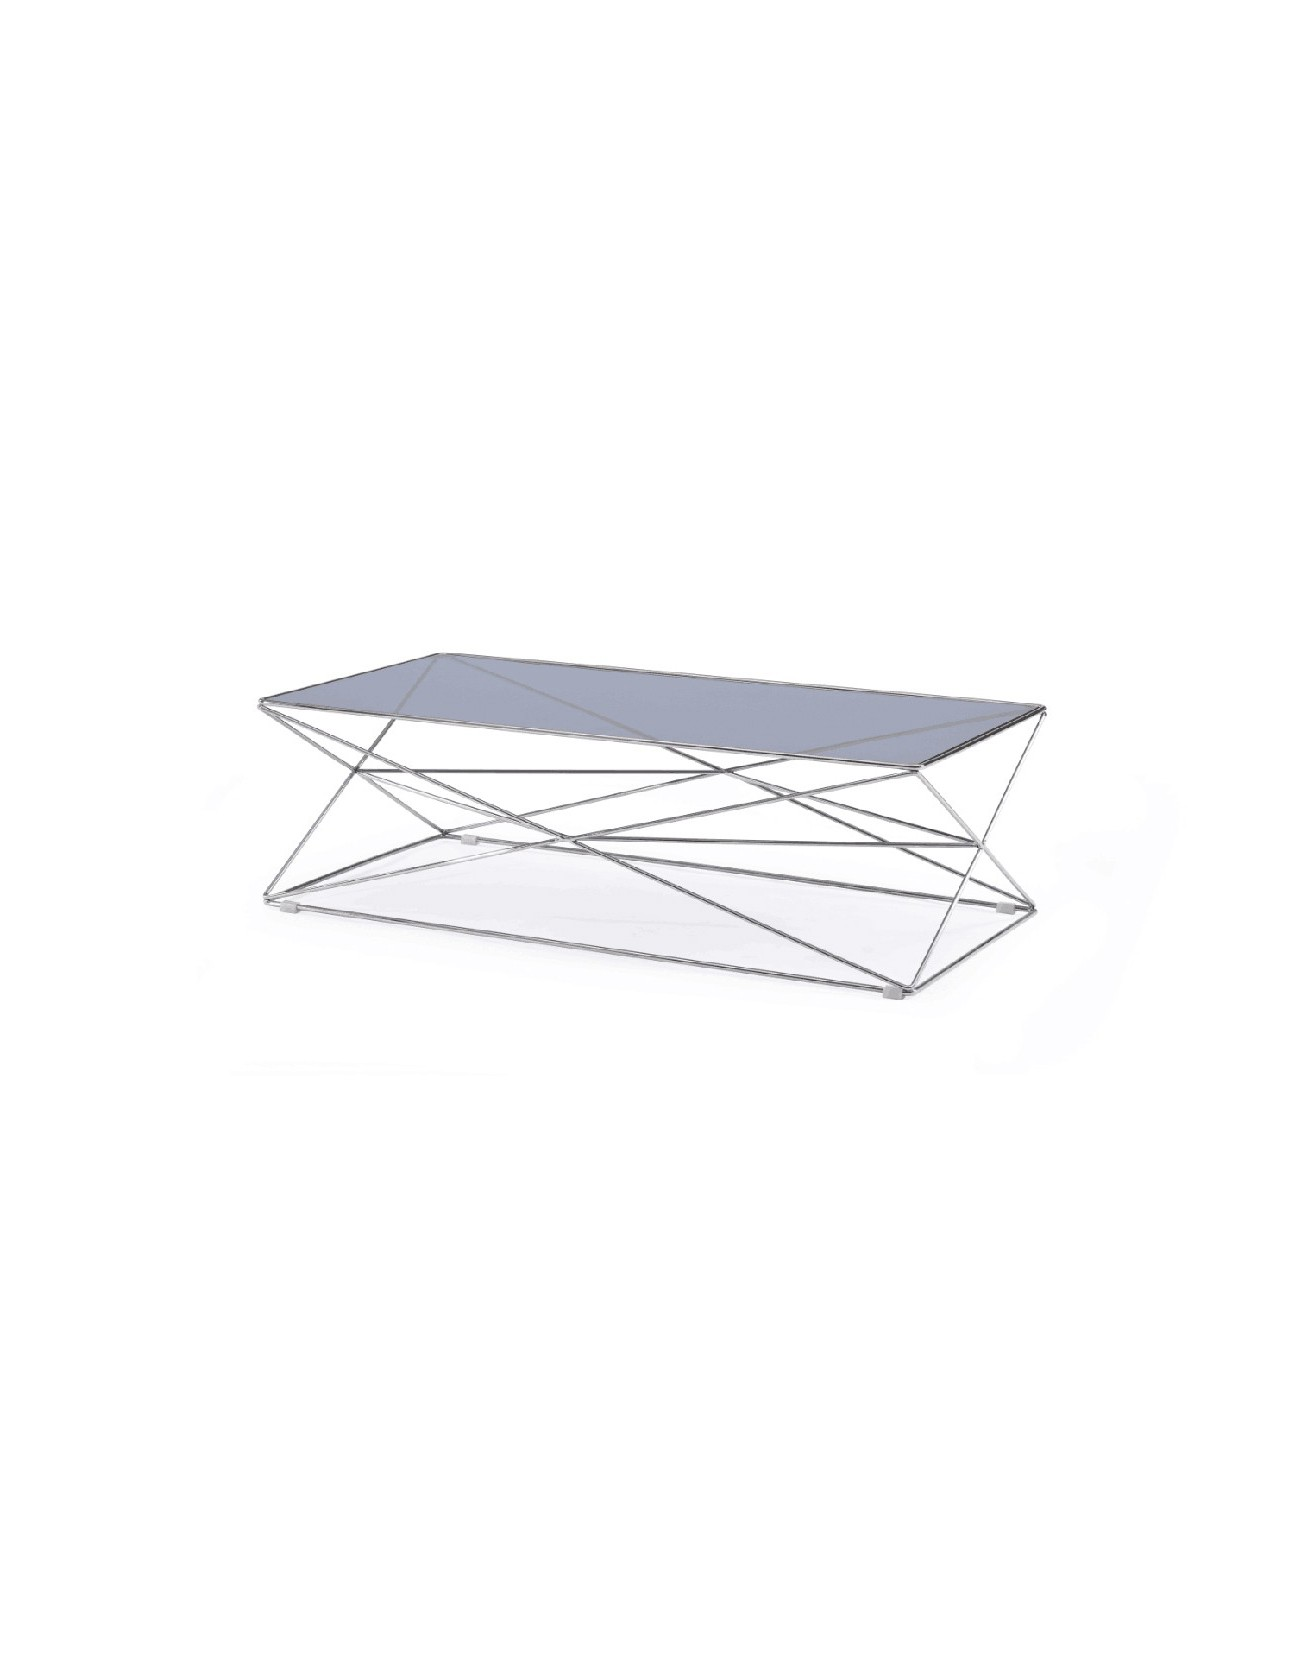 Ghost Dining Table Lux Lounge EFR 888 247 4411